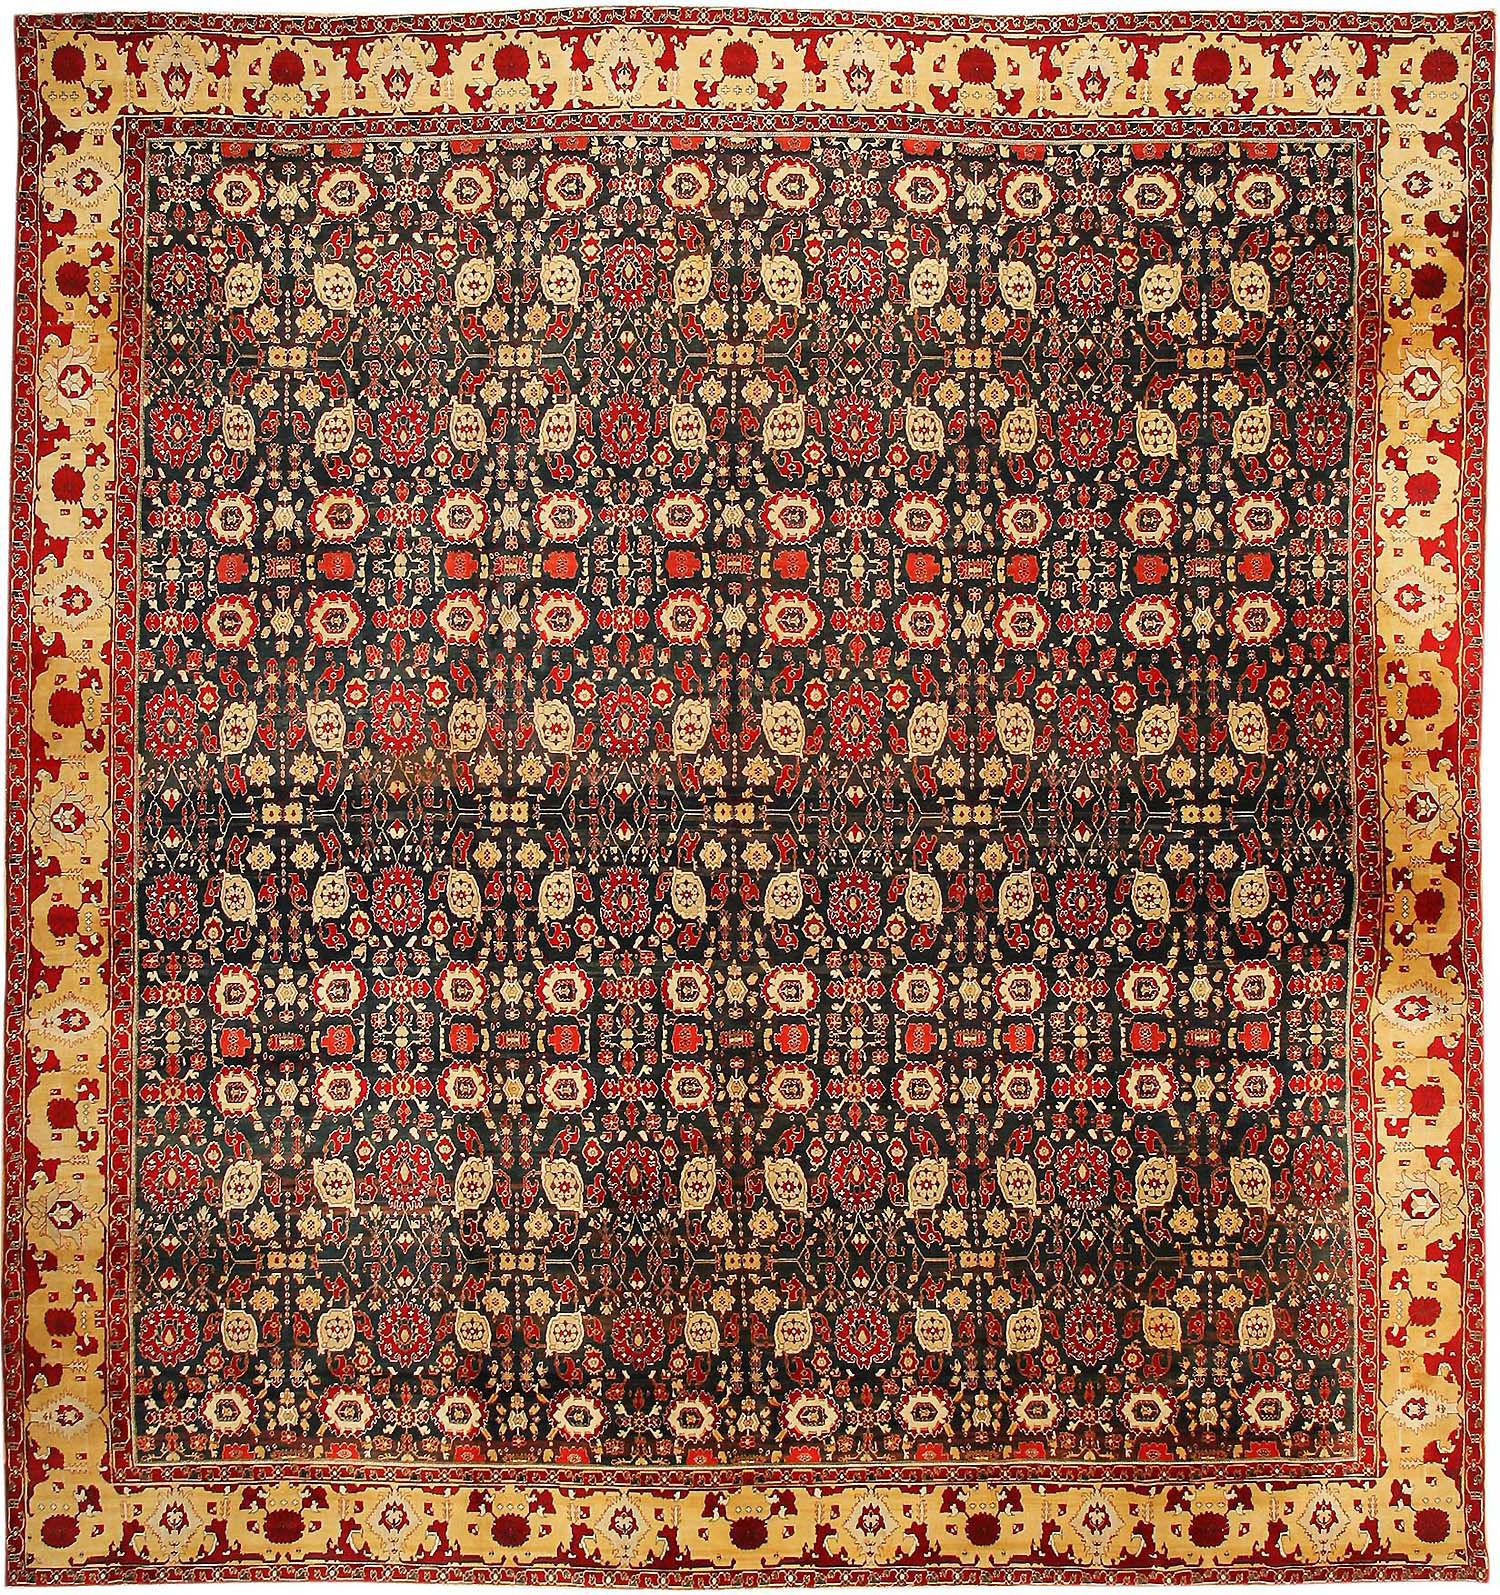 Arts And Crafts Rugs With Exciting Indian Agra Rug Design: Antique Agra Oriental Rugs 43422 For Sale